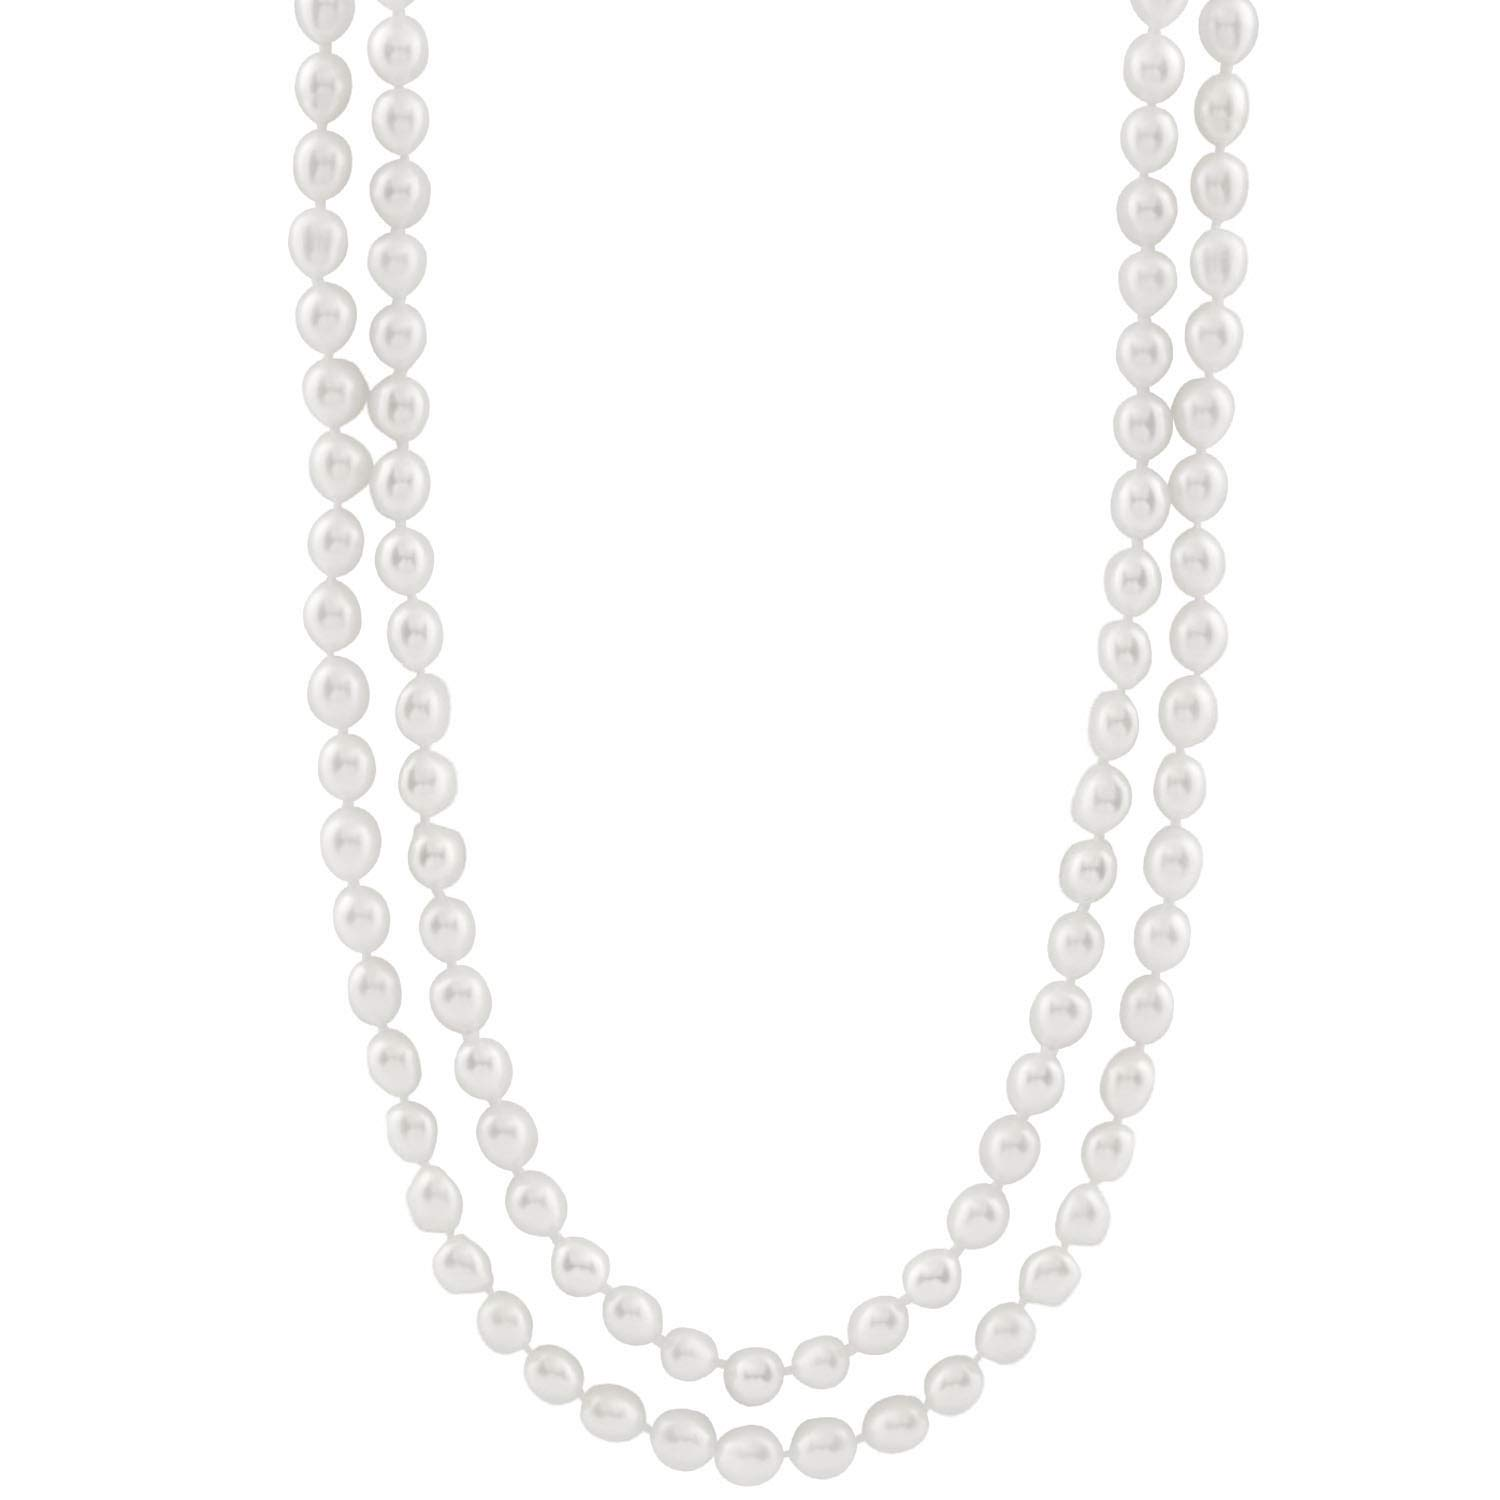 Handpicked A Quality 5-5.5mm White Freshwater Cultured Pearl Strand Endless 52' Necklace Splendid Pearls